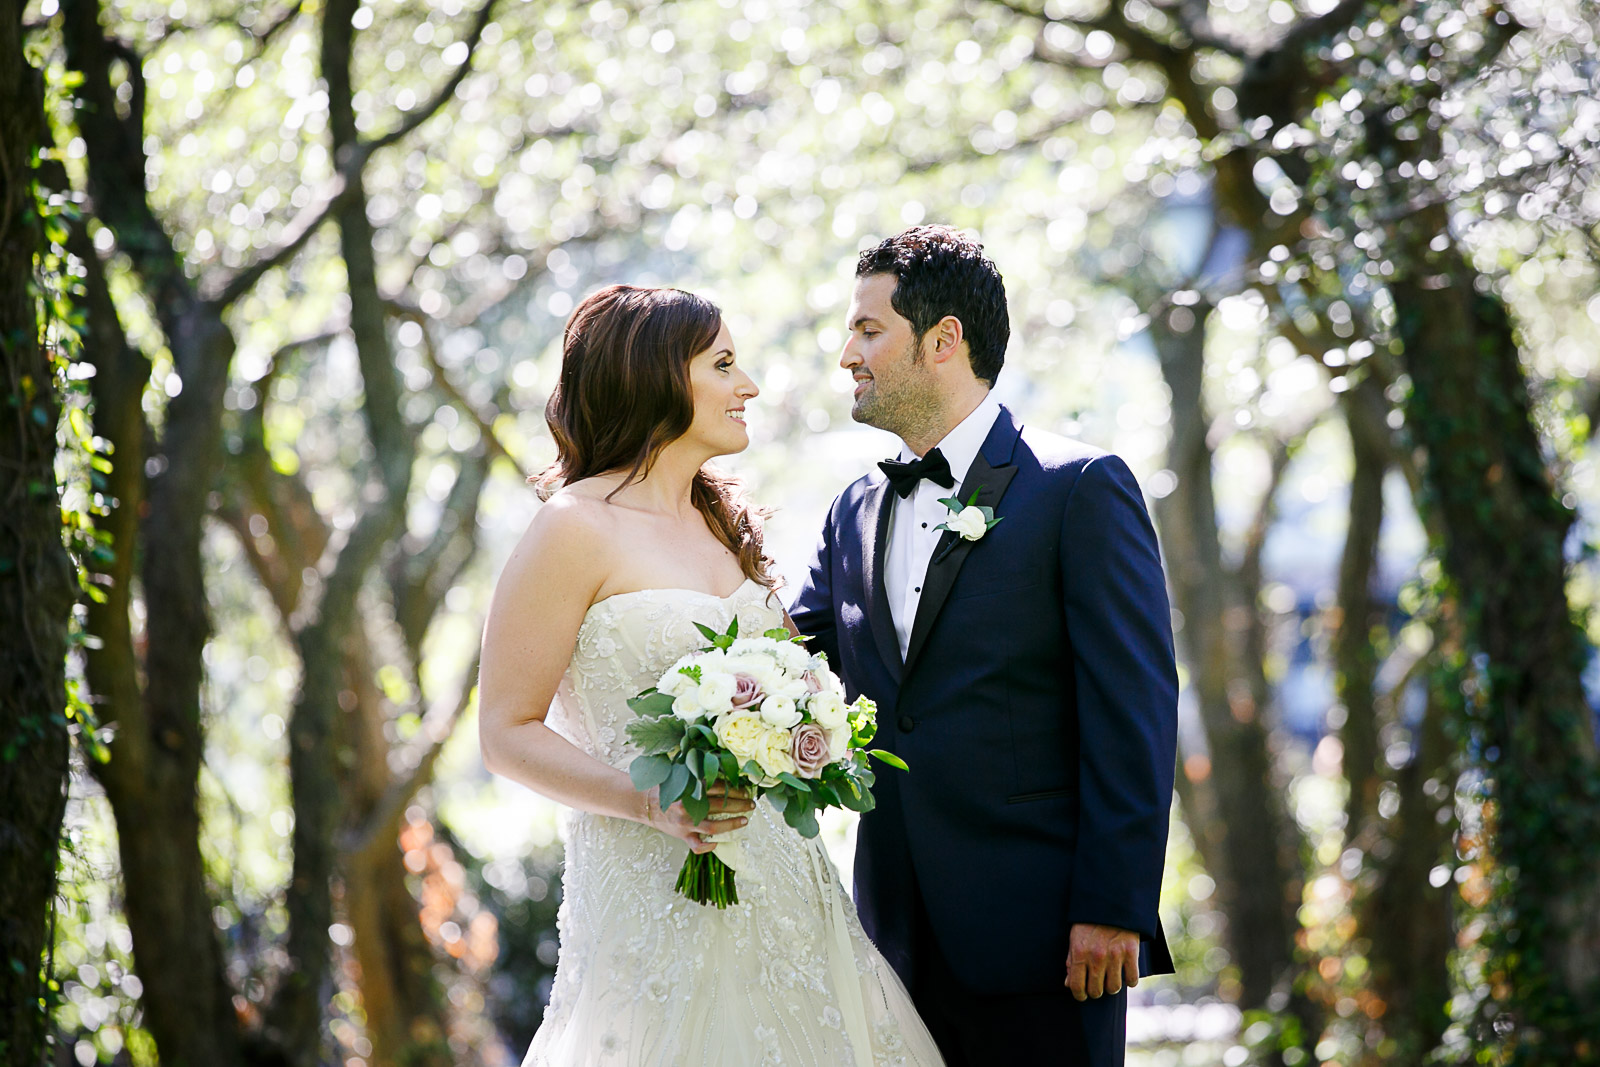 Bride and groom portraits at Chicago's Art Institute South Gardens